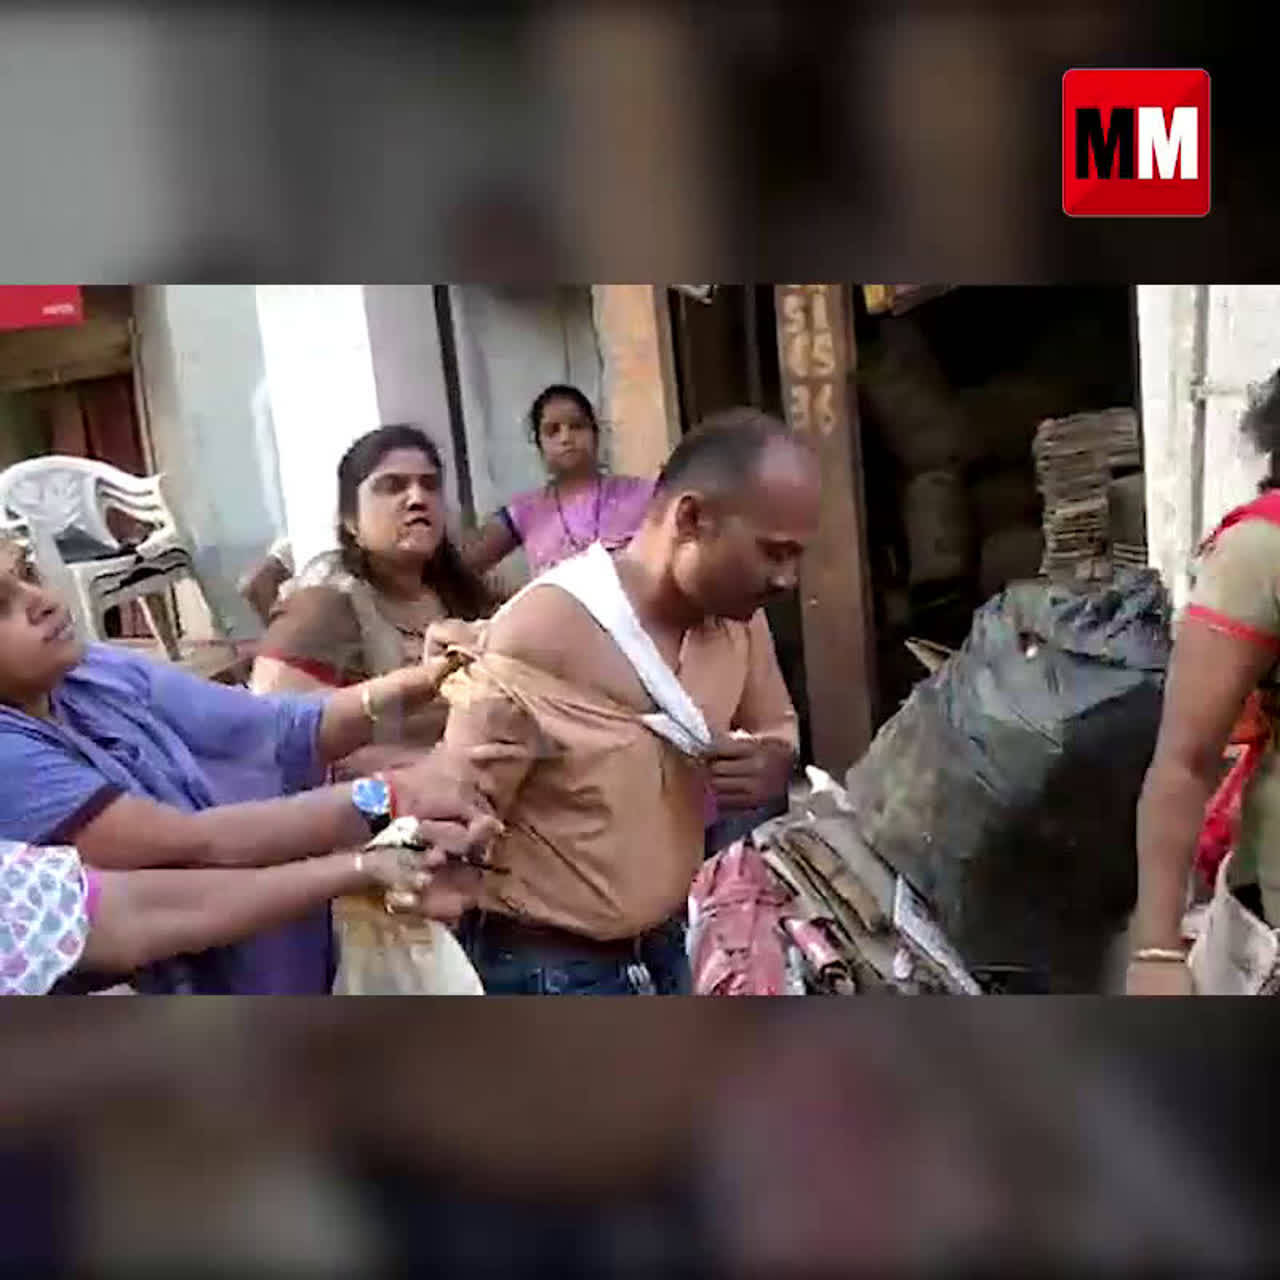 Watch: Man  beaten up for allegedly harassing a woman in Dombivali